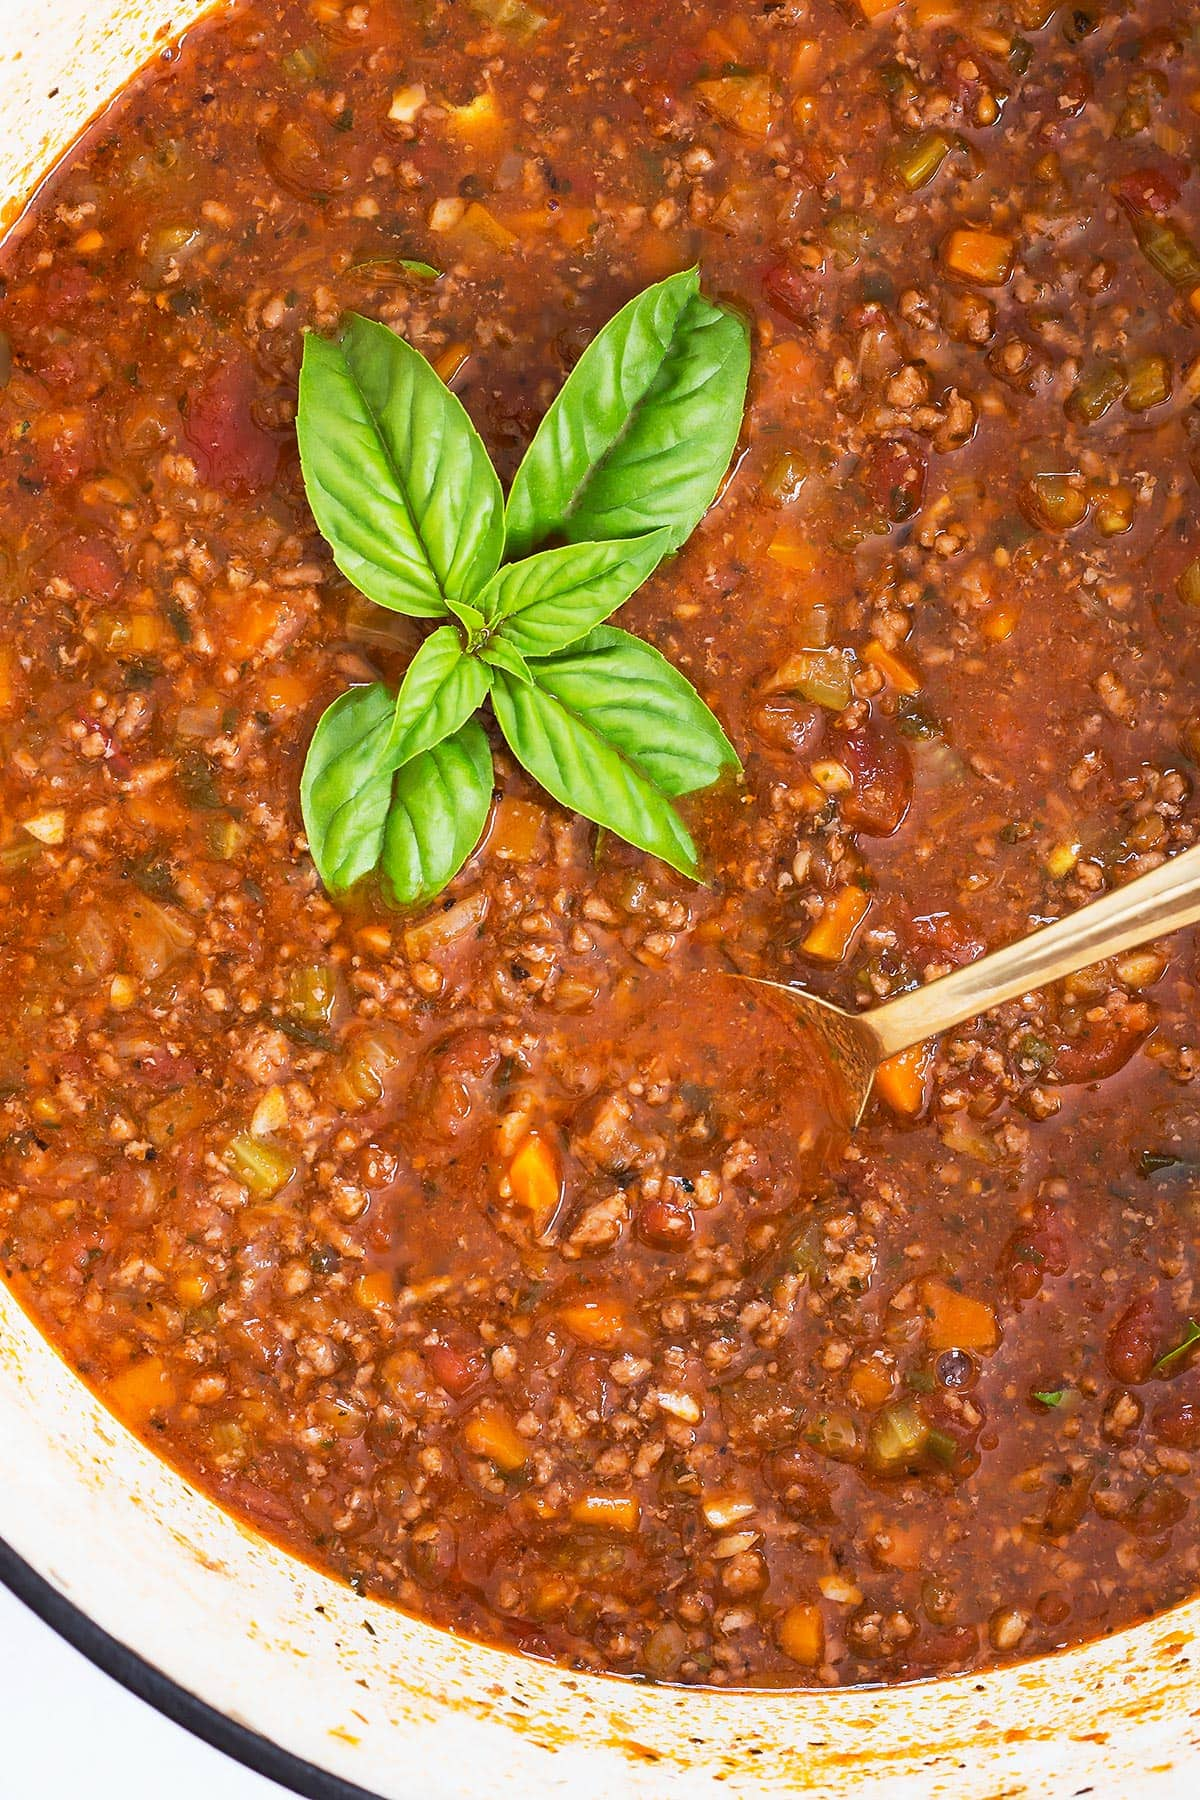 Homemade Bolognese Sauce with fresh basil in pot